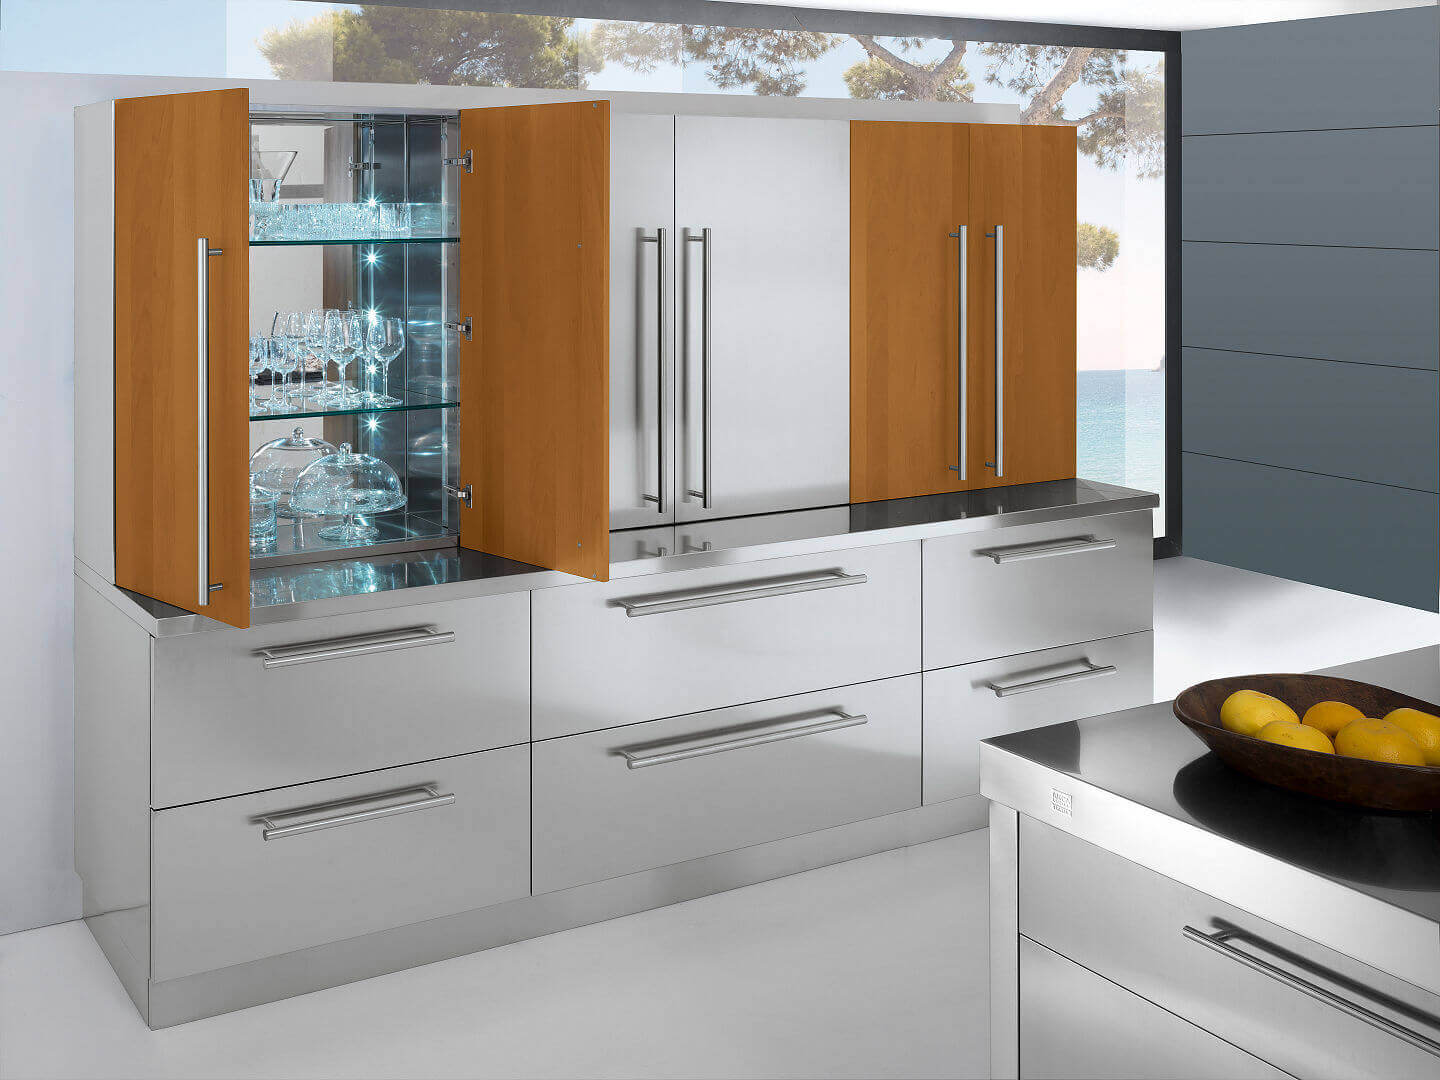 Arca Cucine Italy - Domestic stainless steel kitchens - 23 - Barn a- 003